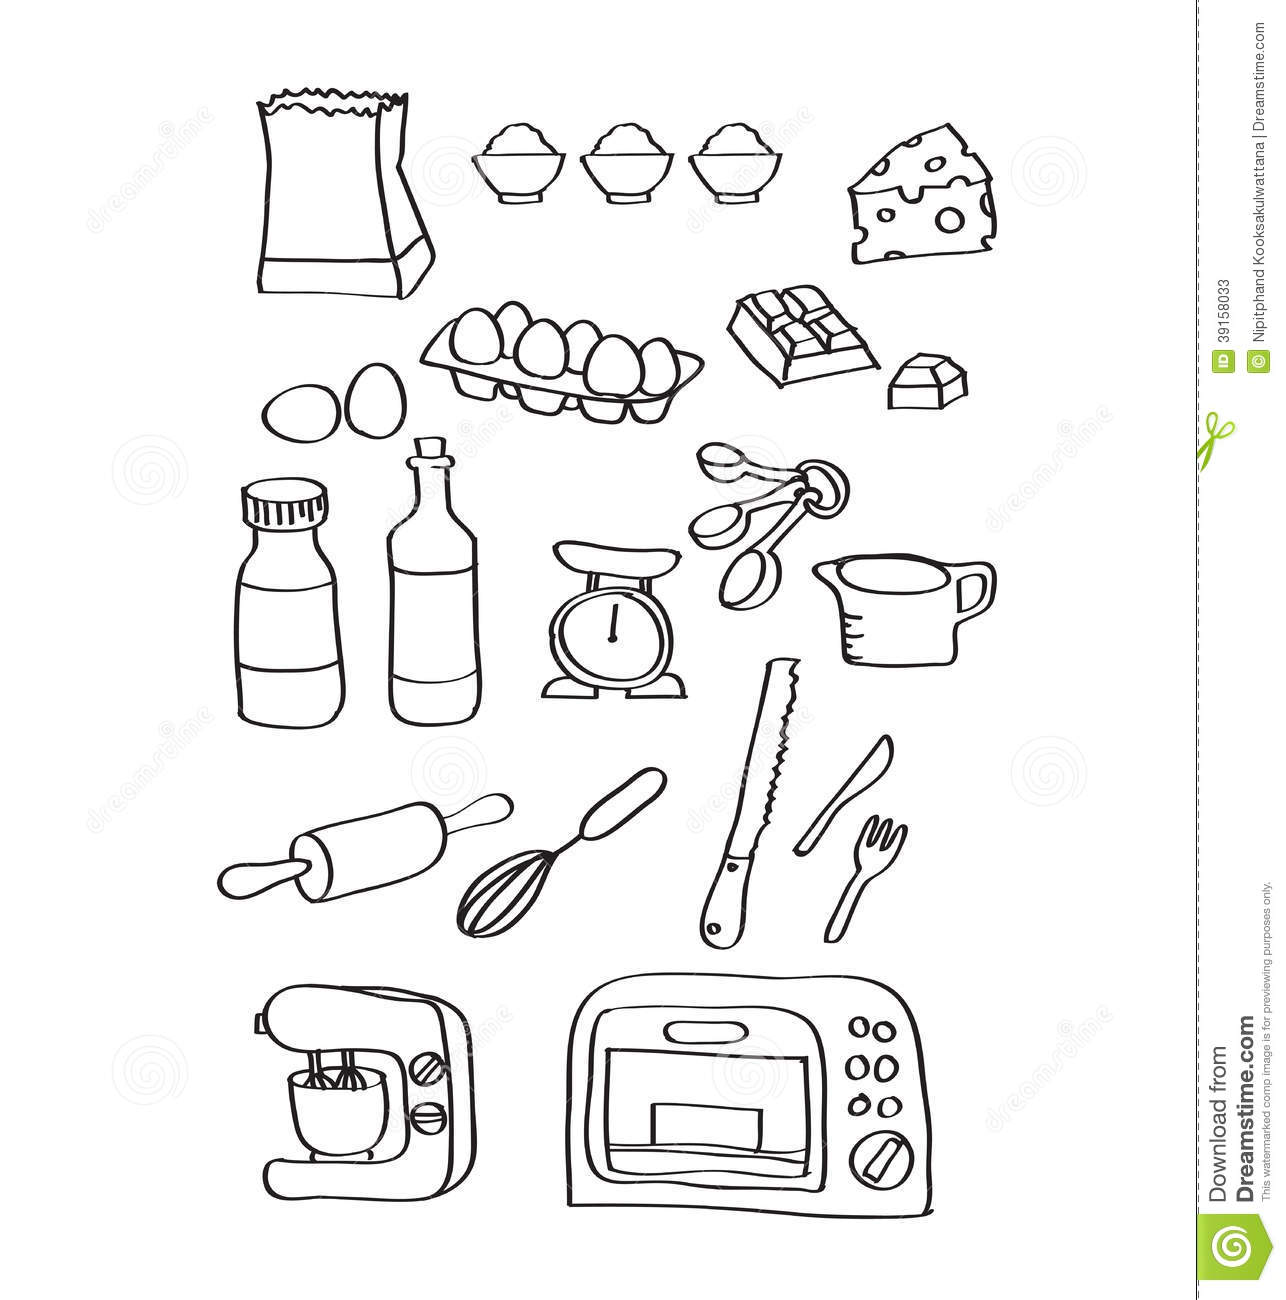 Stock Photos Mix Hand Draw Bakery Equipment Making Chocolate Set Icon Image39158033 moreover Royalty Free Stock Photos Sketch Hurricane Image14339558 additionally Kestrel besides Stock Illustration Mountain Lake Pine Trees Landscape Hand Drawn View Forest Vector Illustration Image67951861 additionally 216443. on tree house plans